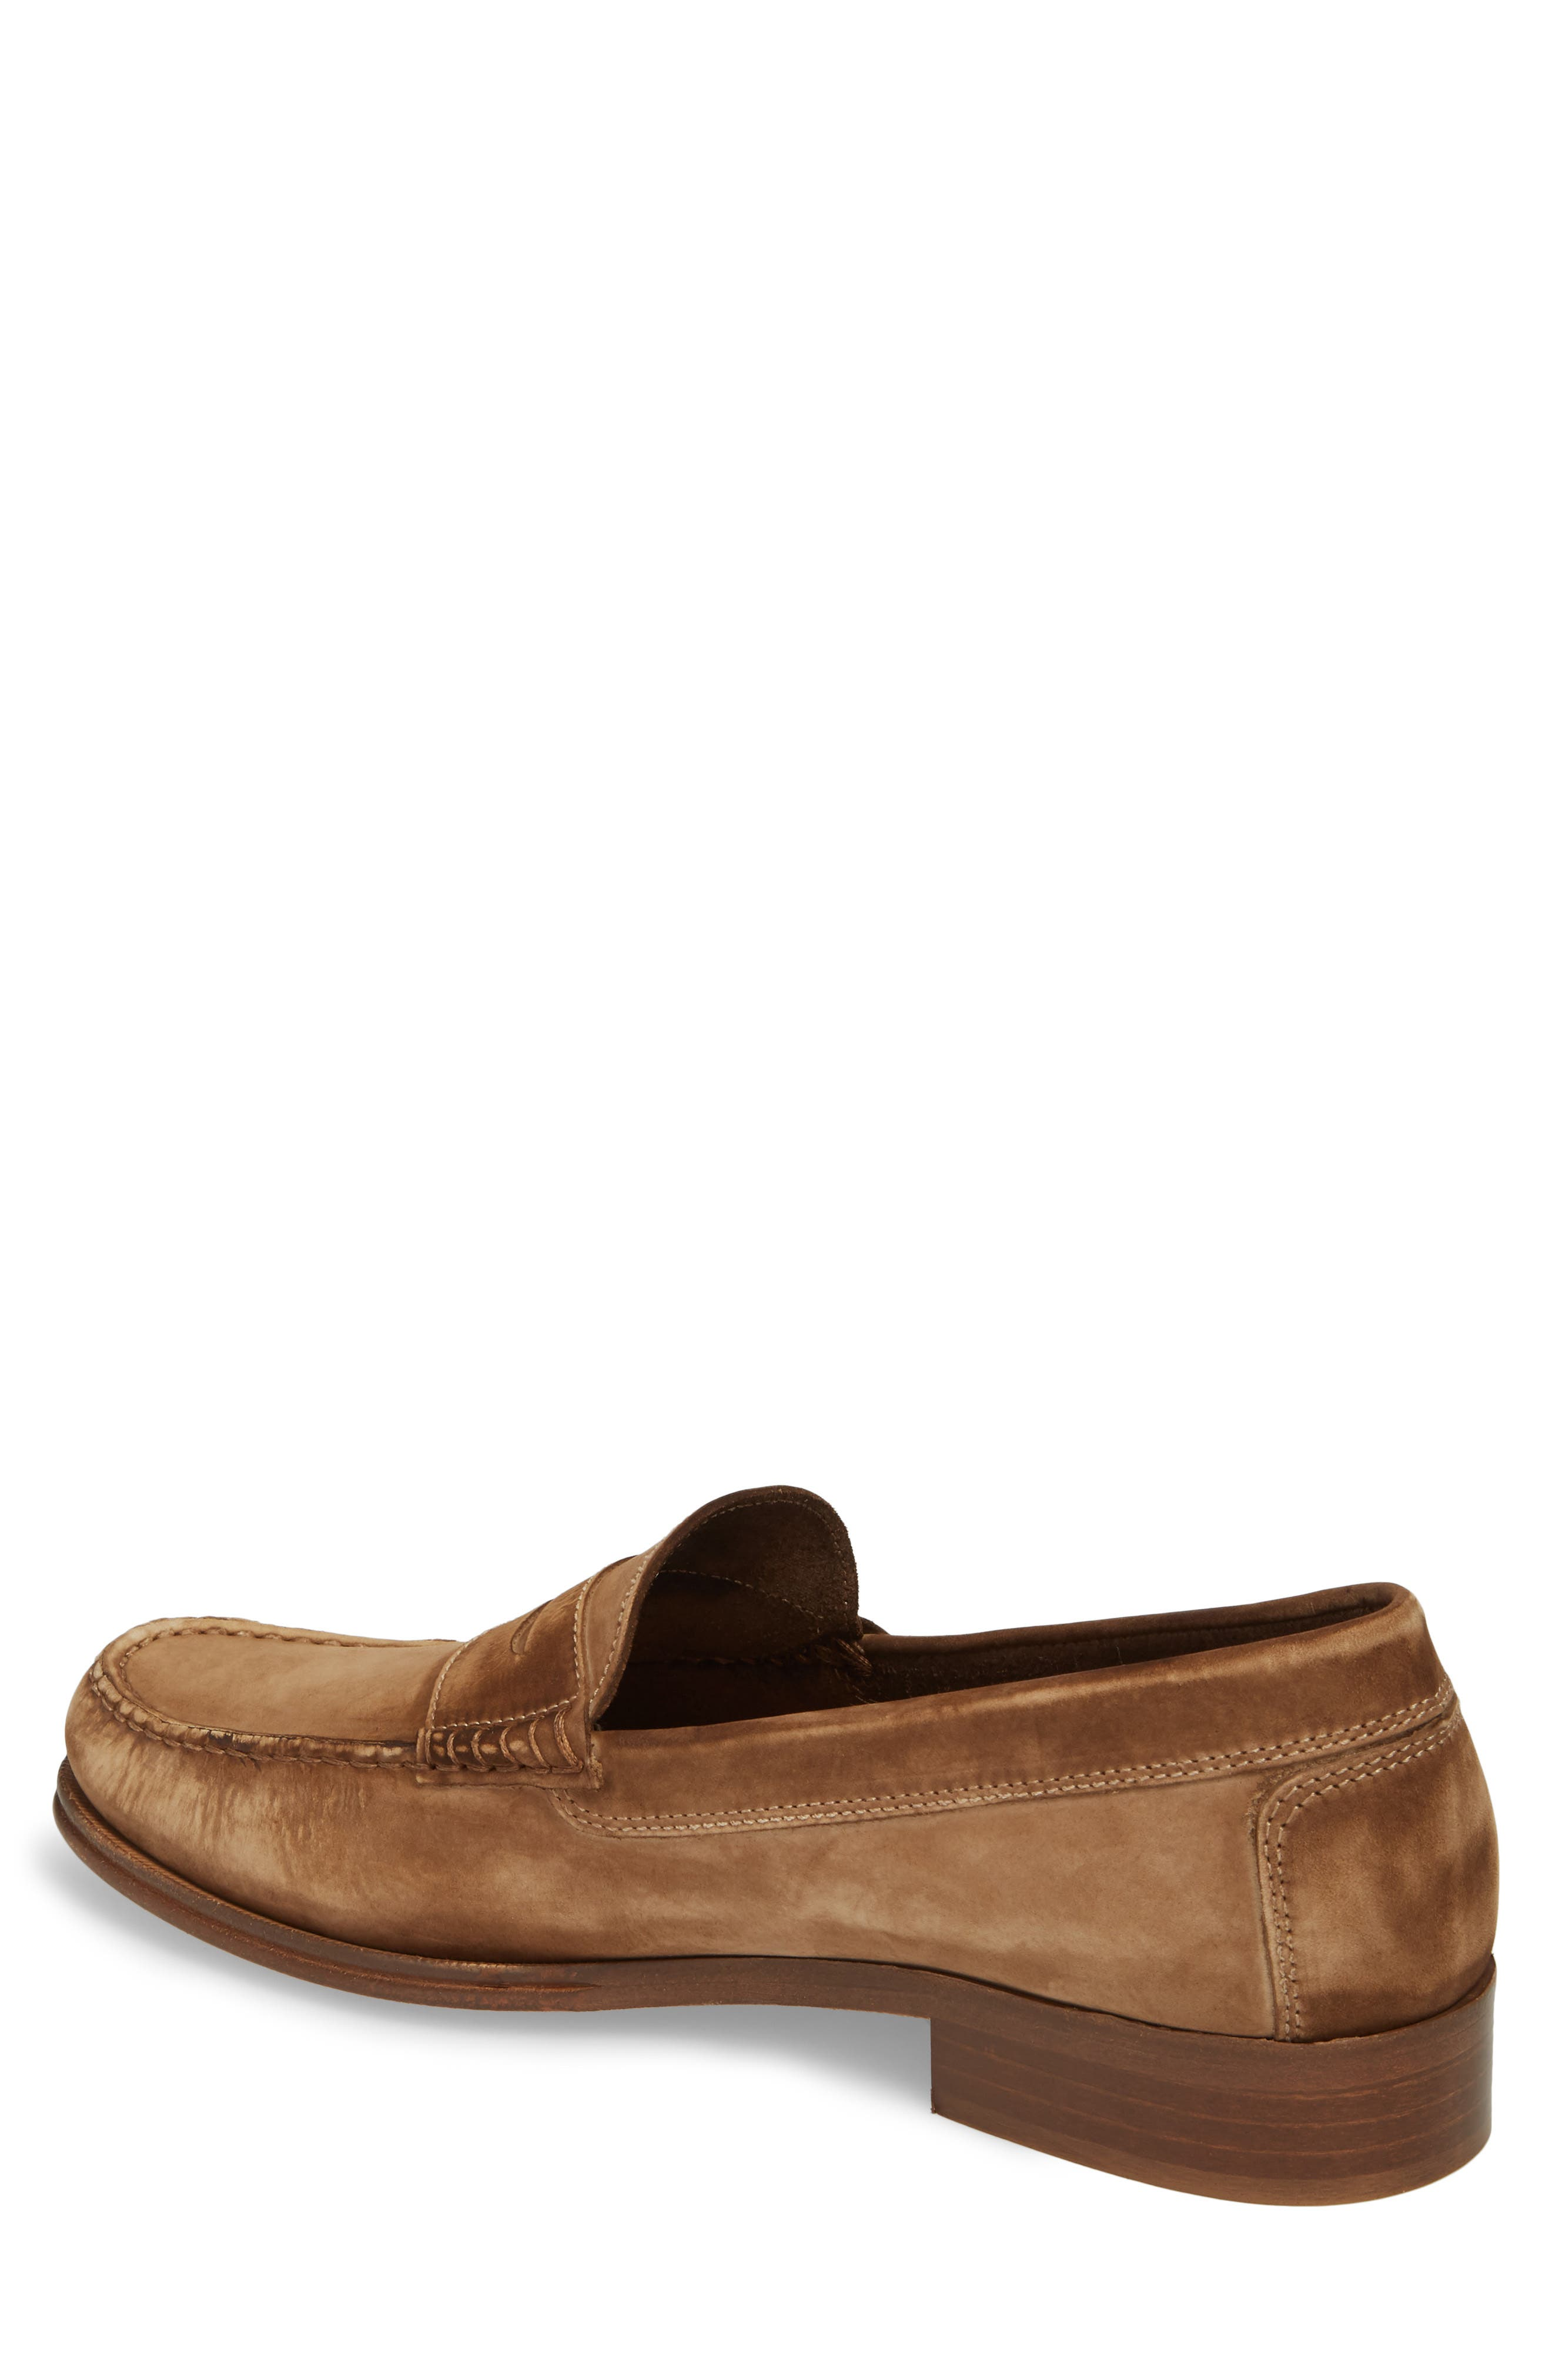 Nicola Penny Loafer,                             Alternate thumbnail 2, color,                             Chocolate Nubuck Leather